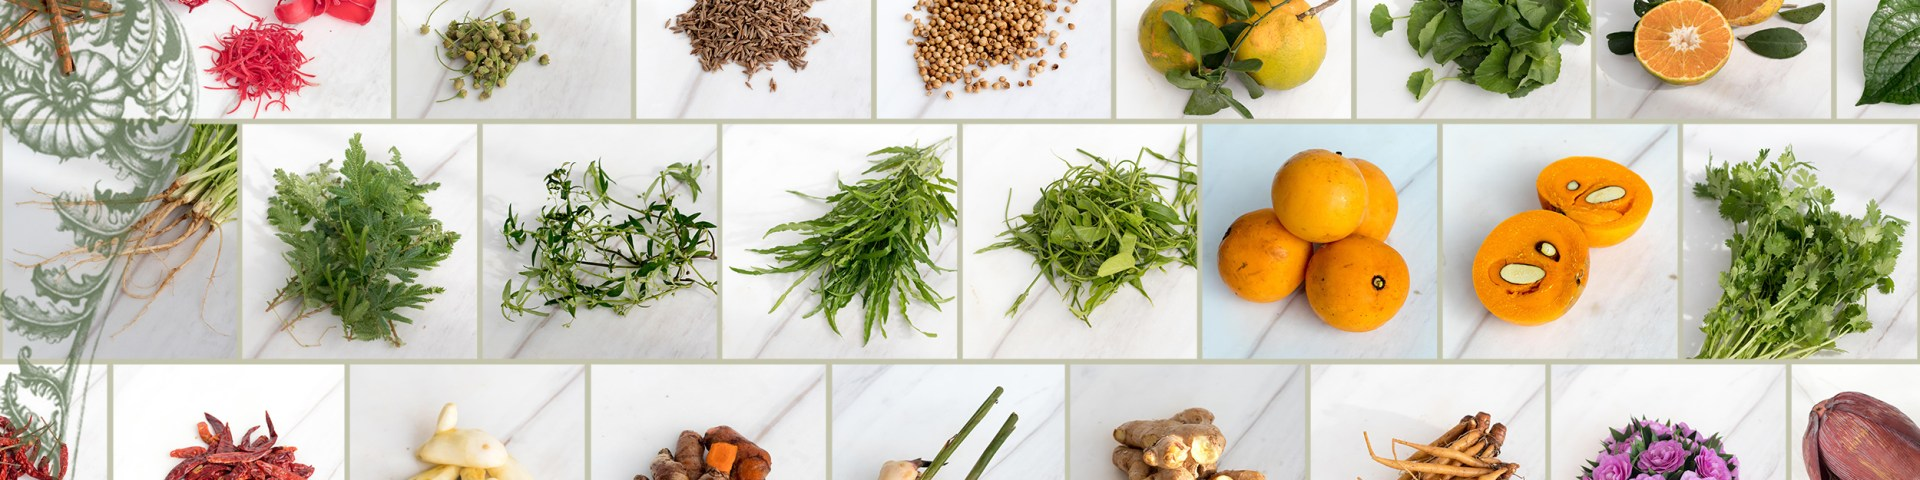 Header Ingredients Grid 01